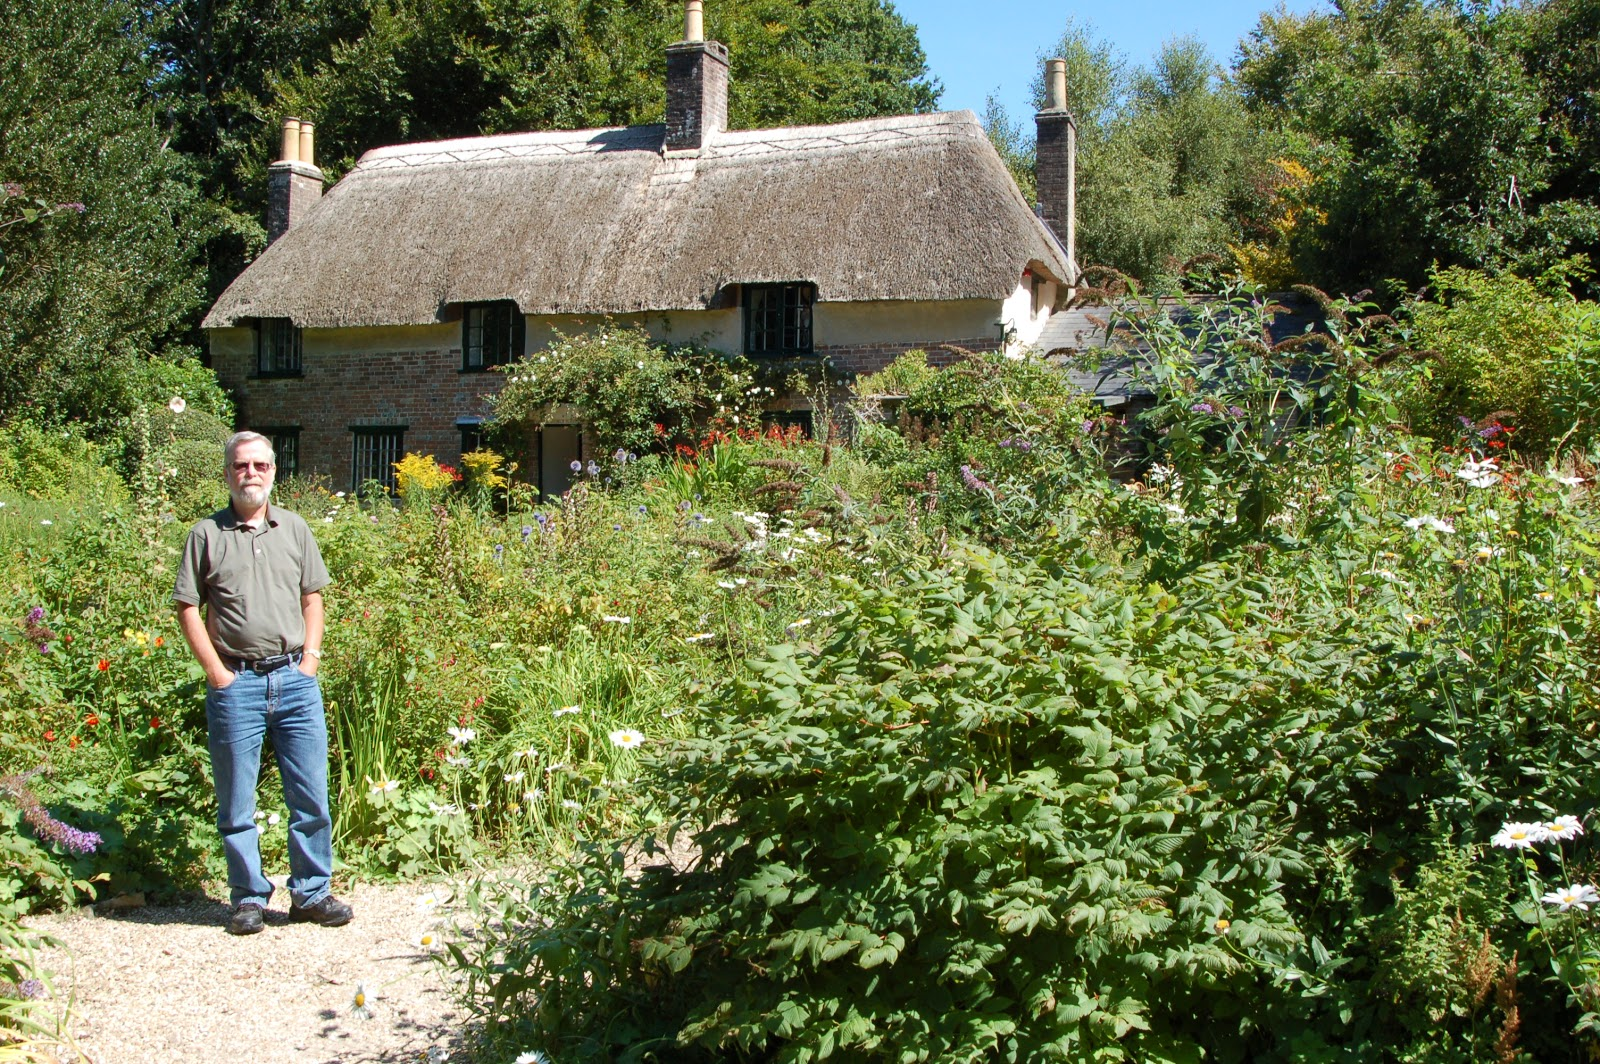 baugh s blog photo essay thomas hardy s cottage in dorset that s me in front of hardy s cottage